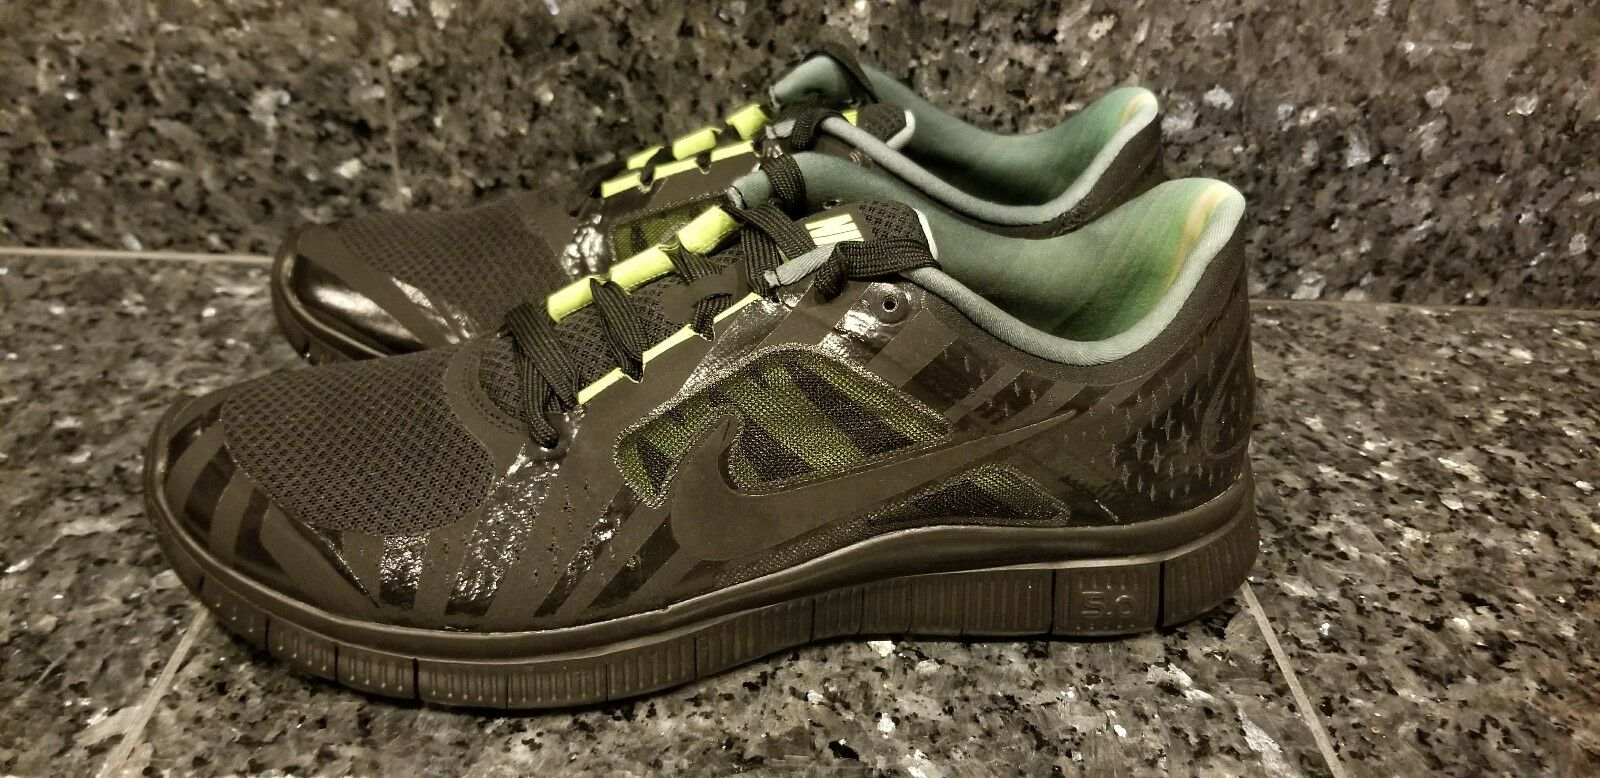 2012 NIKE FREE RUN + 3 III HURLEY NRG BLACK VOLT YELLOW 553548-003 SUPER RARE!!!